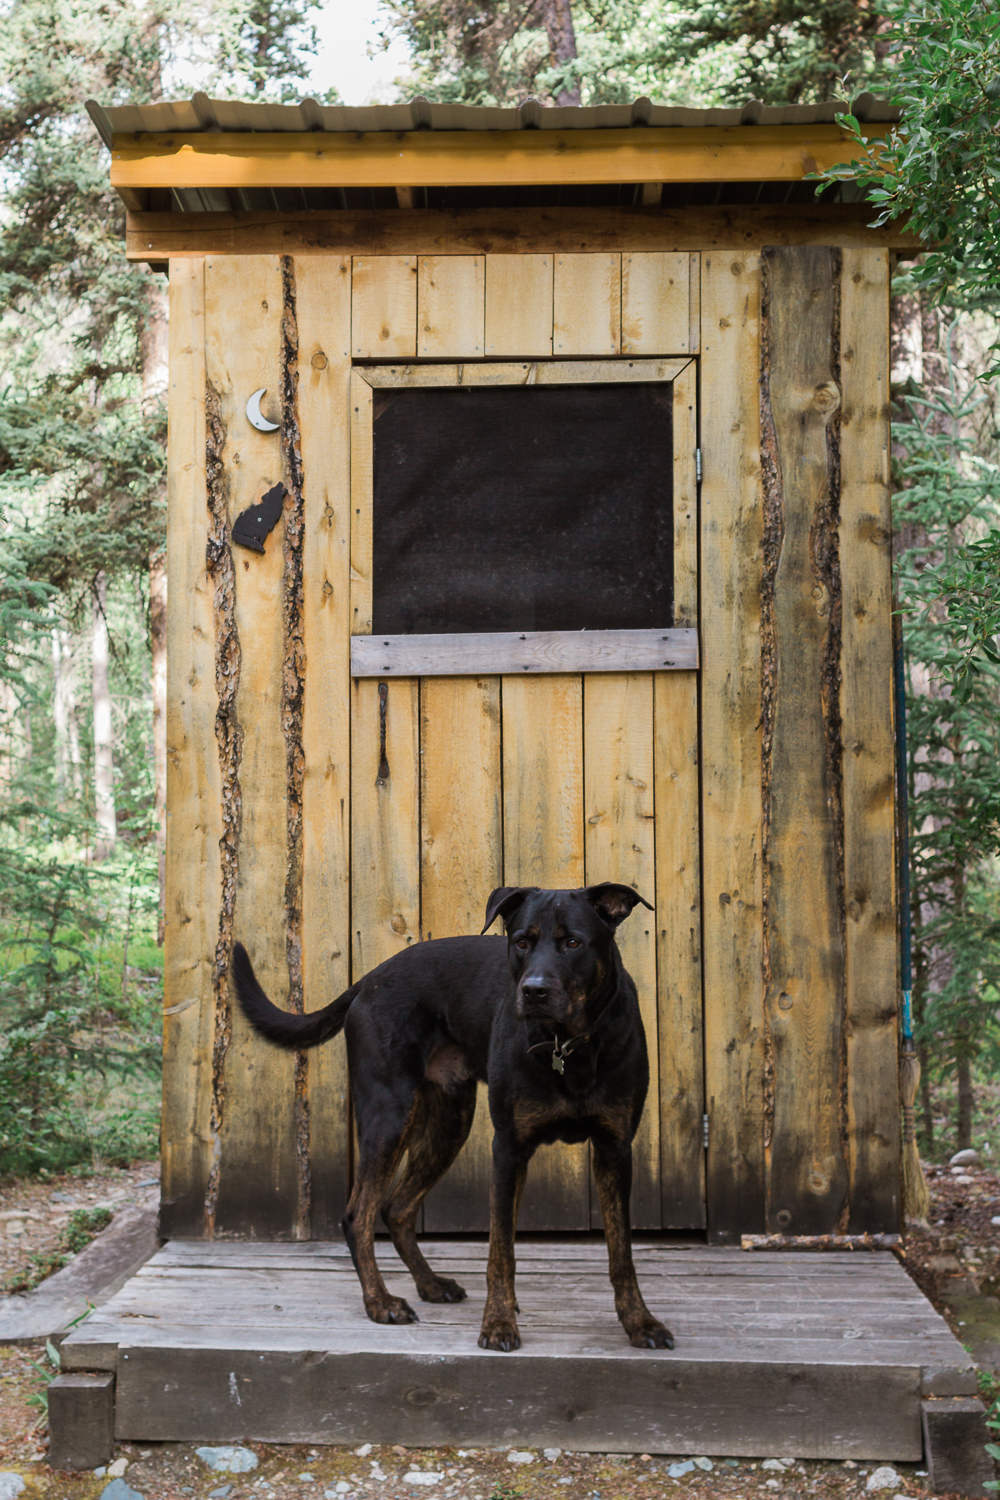 Orin escorting me to the outhouse.